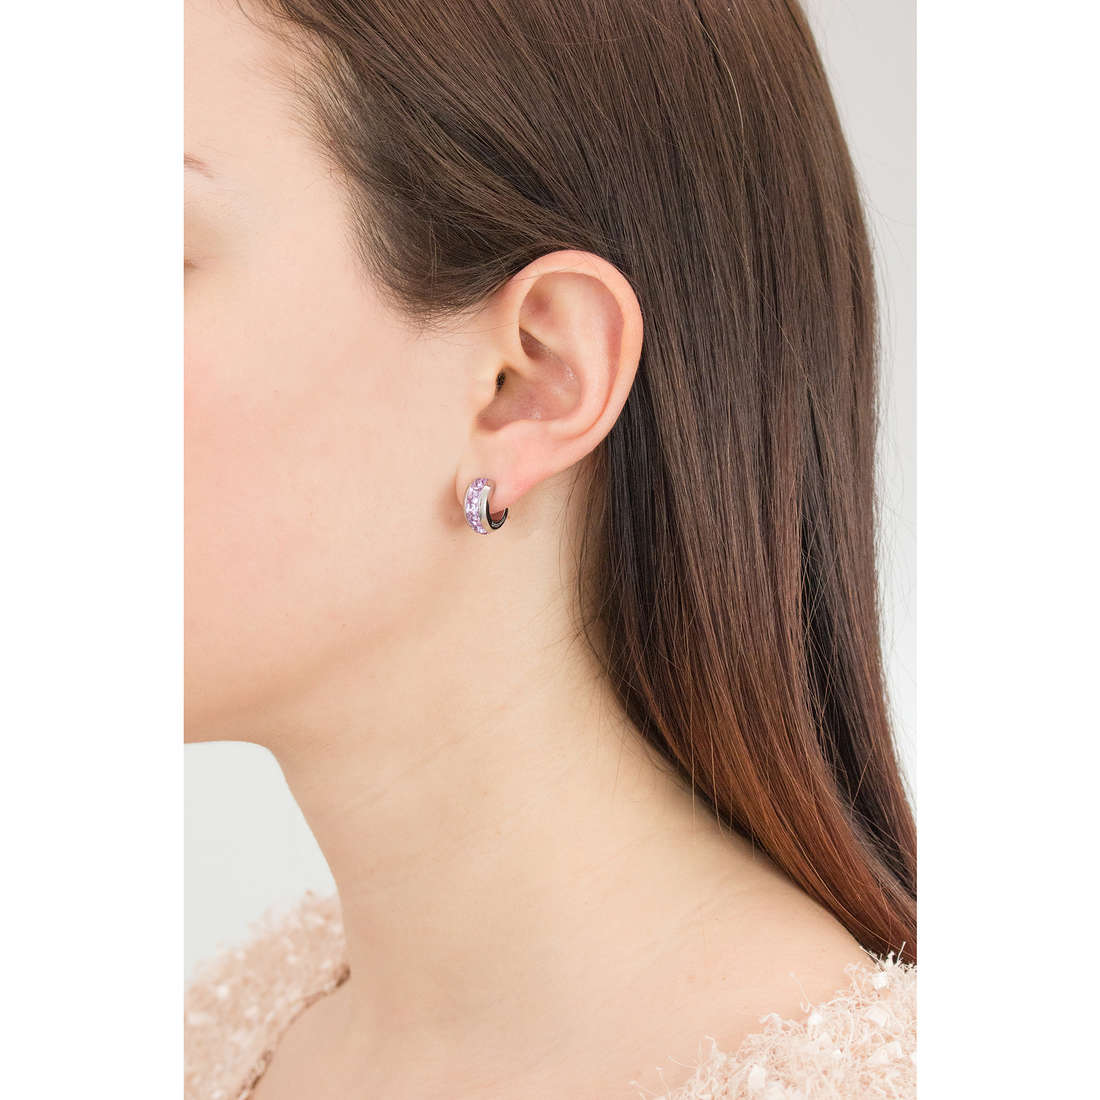 Brosway boucles d'oreille Tres Jolie femme BTJE02 photo wearing